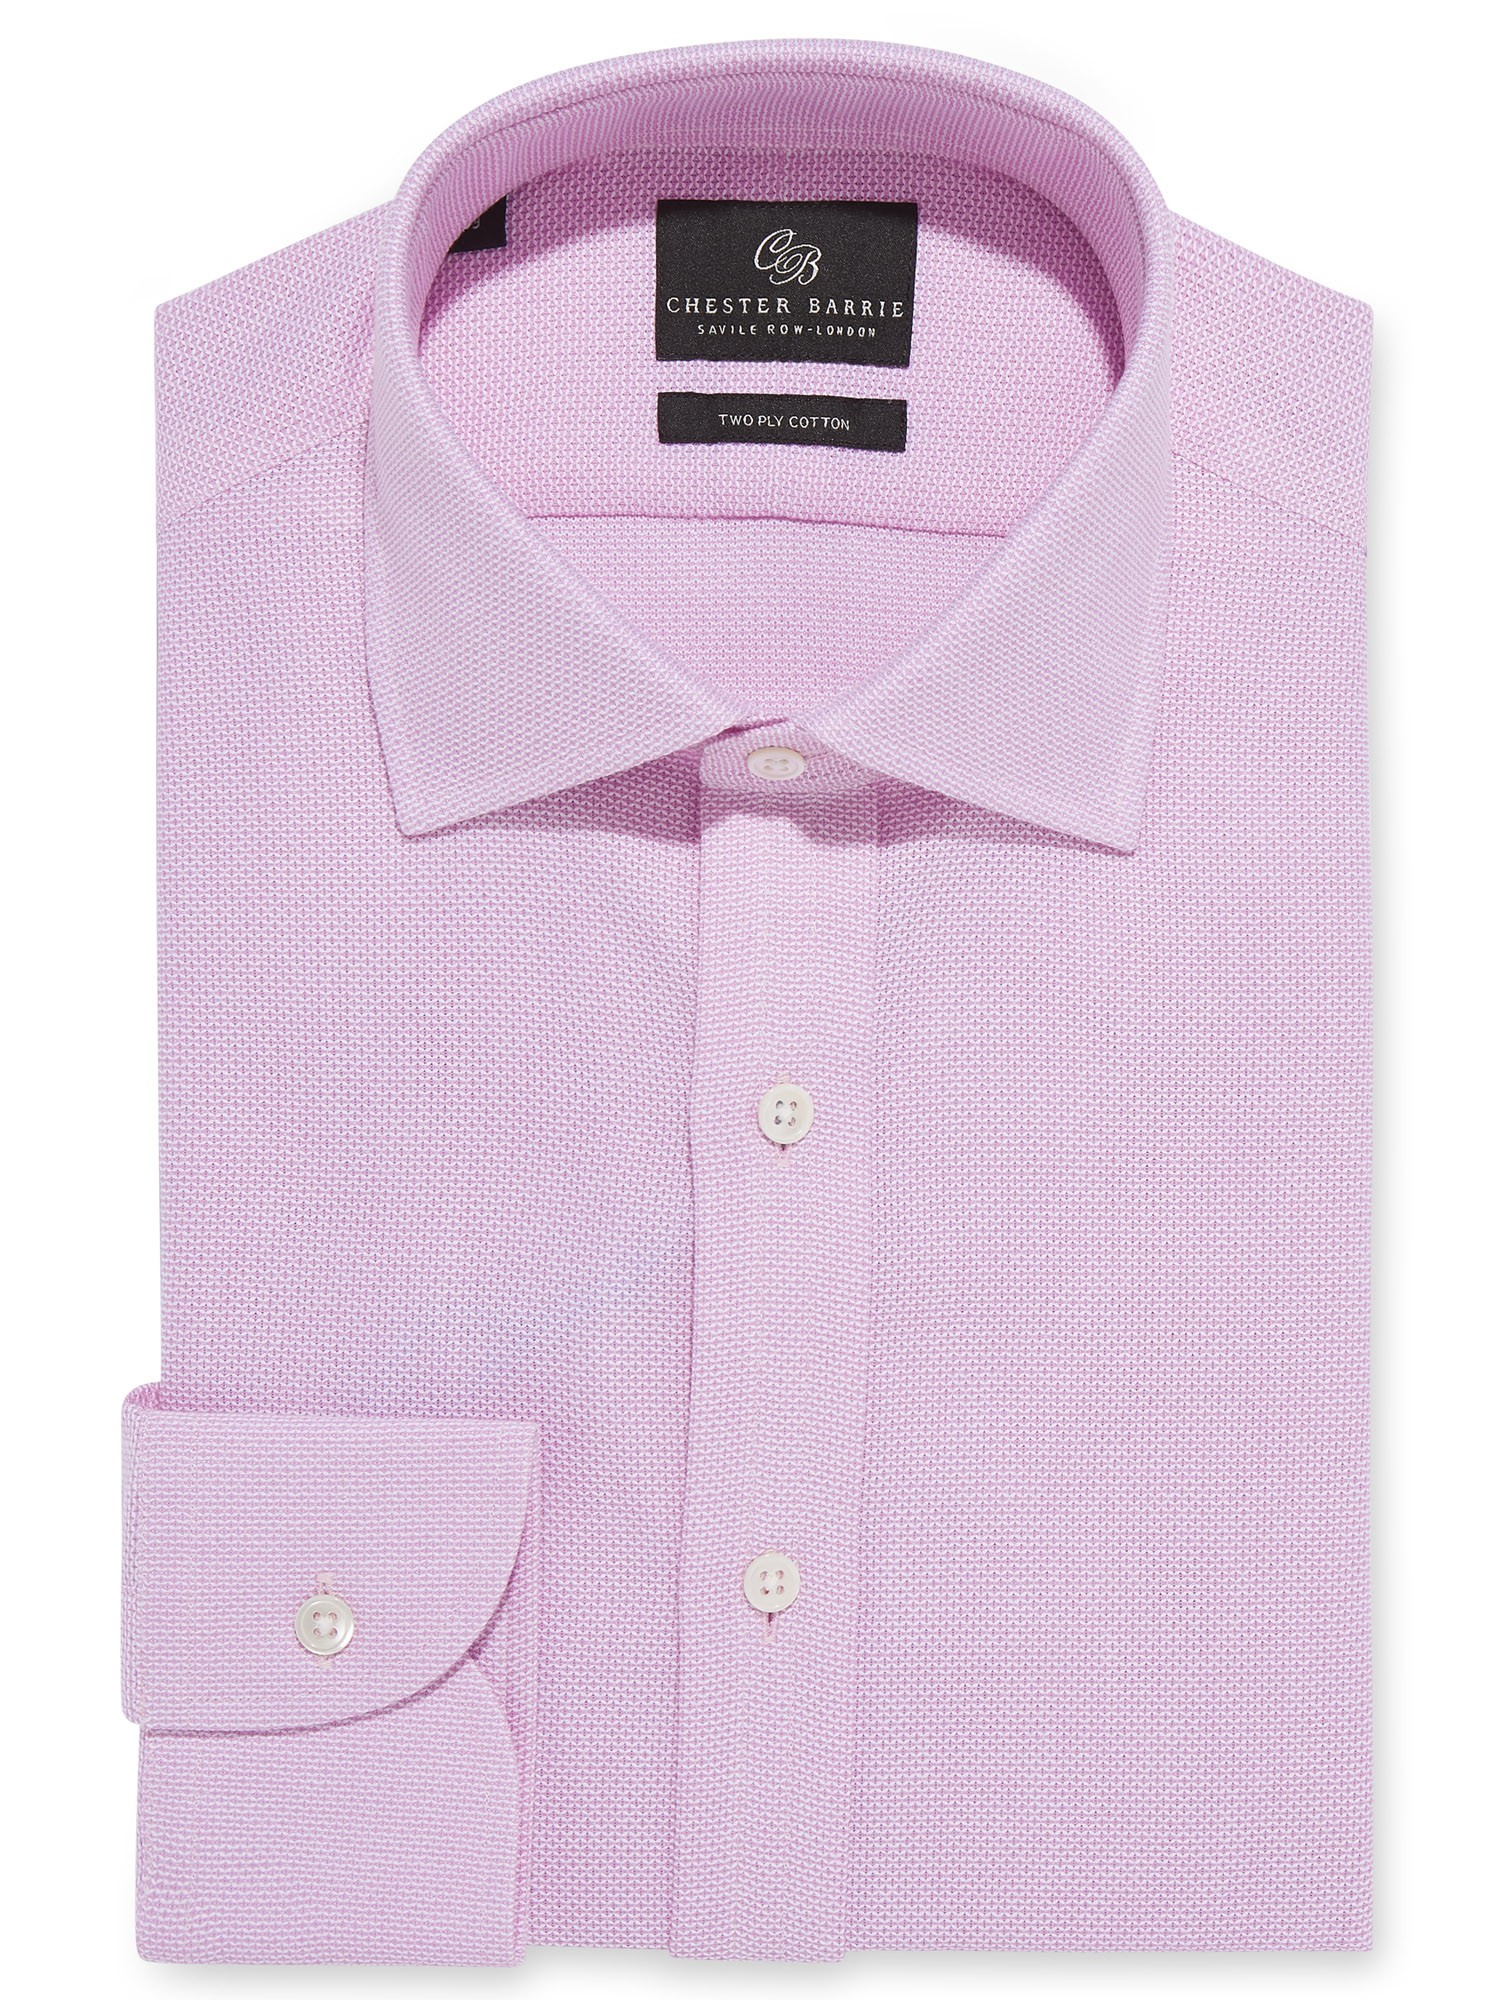 CHESTER BARRIE PINK SOFT LENO SHIRT